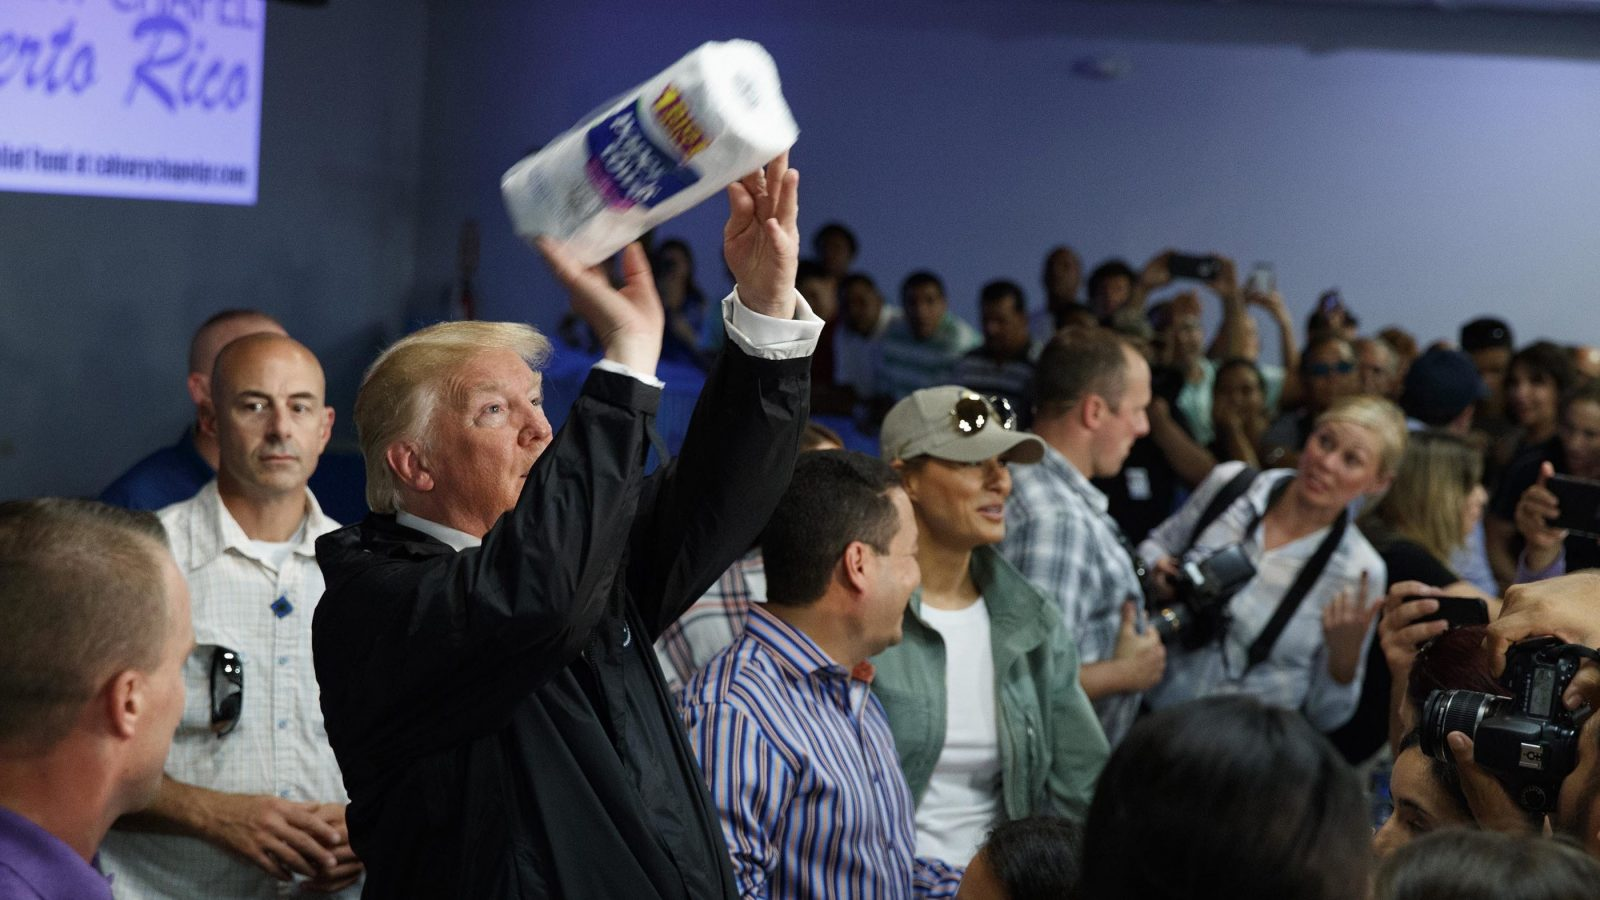 Trump throws a roll of paper towels into the crowd.